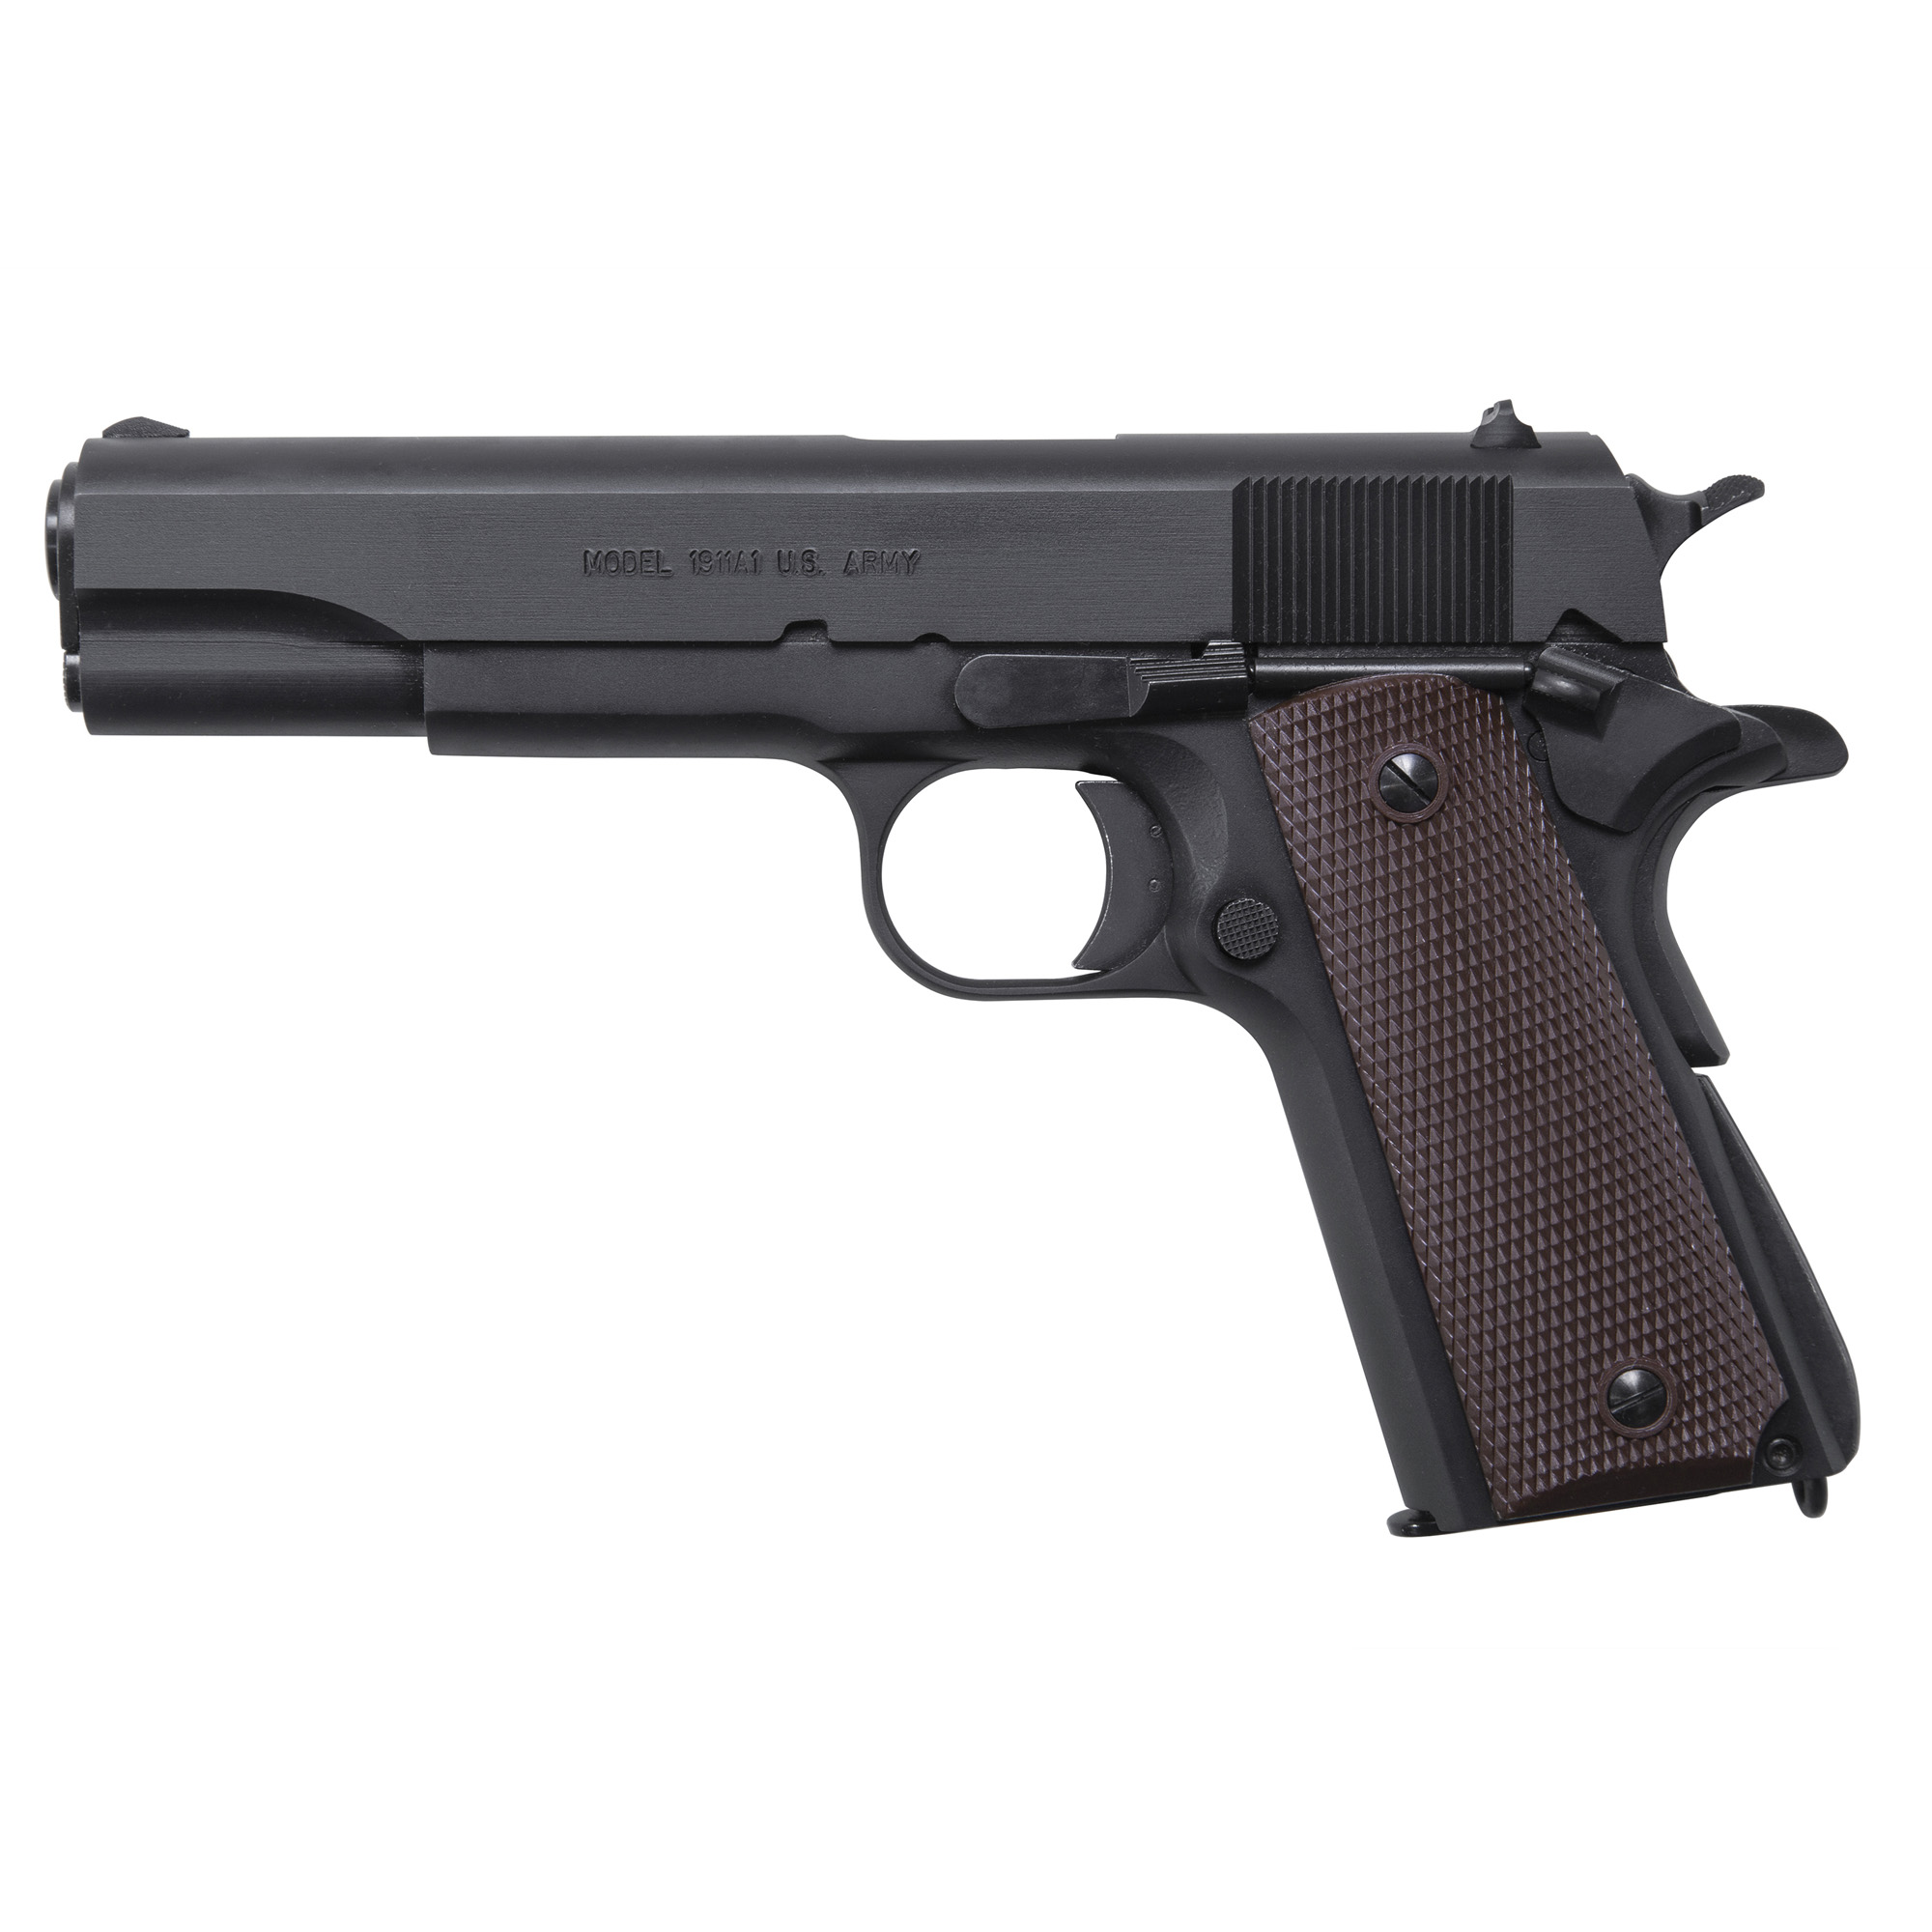 "The Auto-Ordnance 1911BKO frame incorporates GI specs"" and features a matte black finished frame"" barrel"" and slide. The carbon steel slide"" sear"" and disconnector are machined from solid bar stock"" then heat treated properly to assure durability and long life over many thousands of rounds."